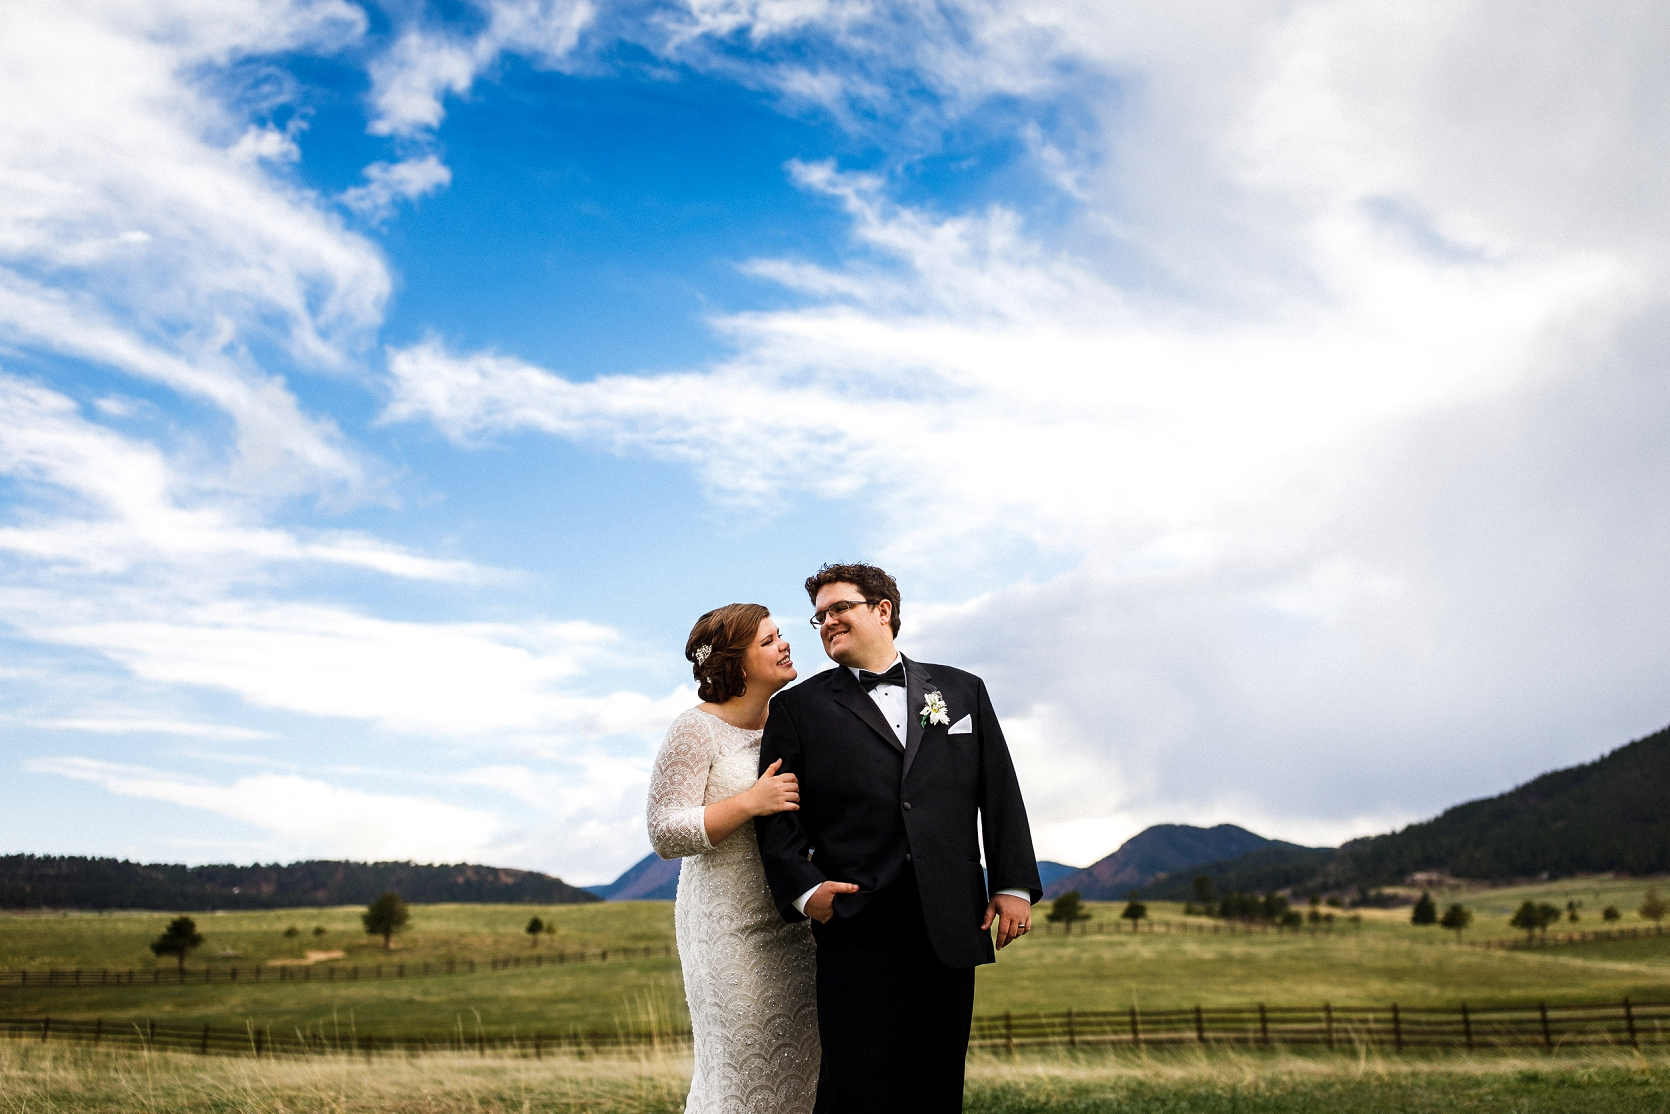 Spruce_Mountain_Ranch_Wedding_0626